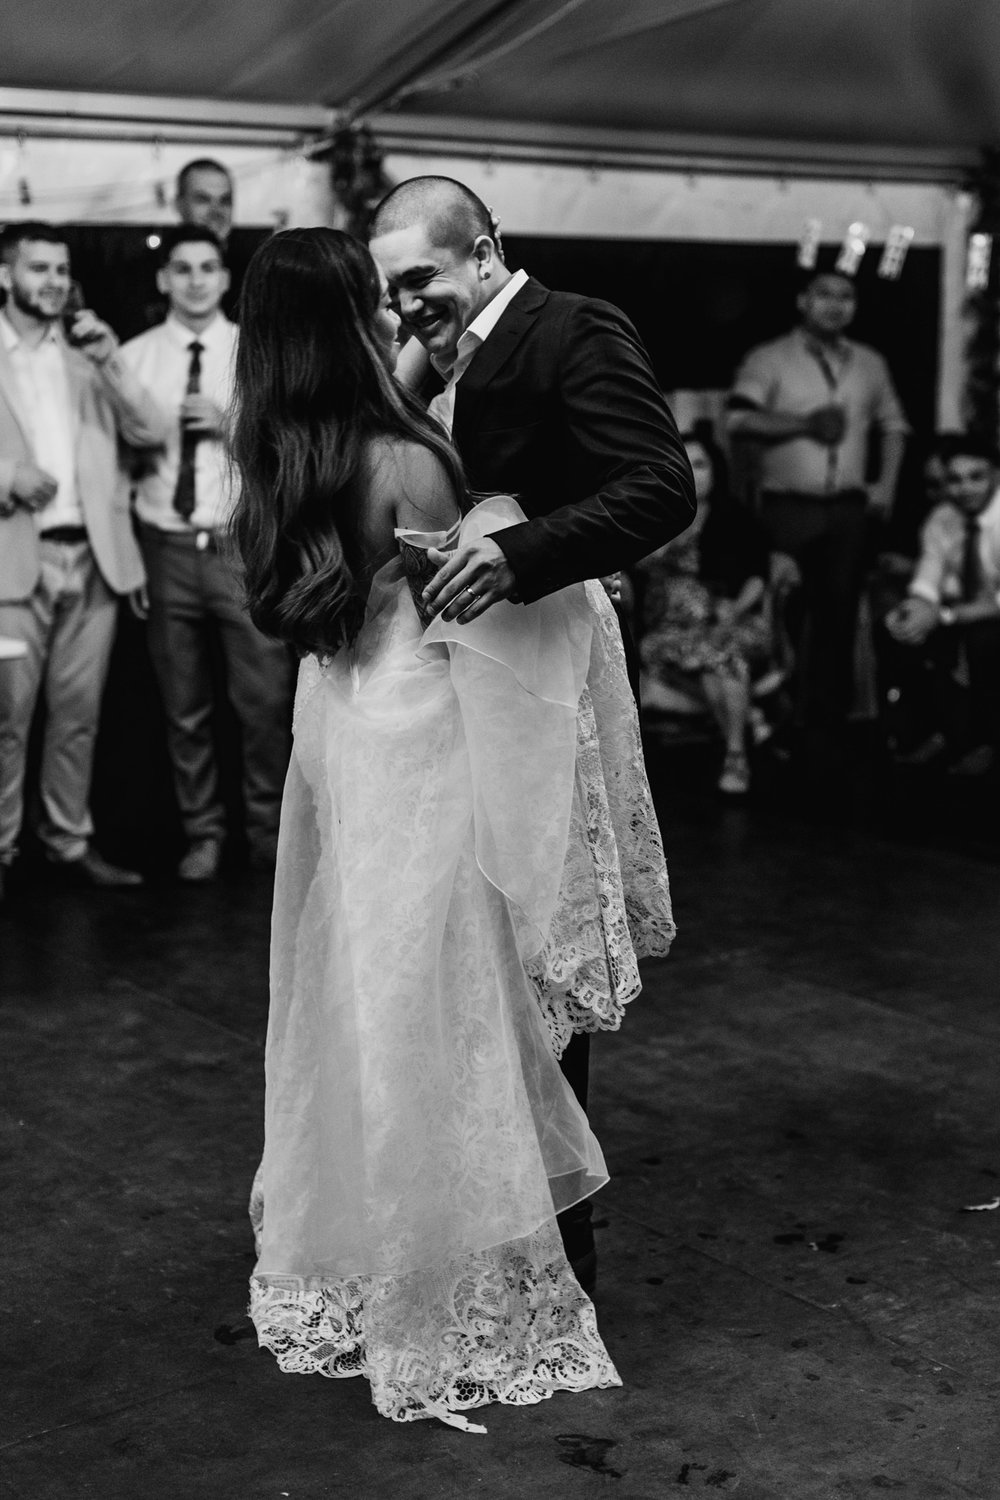 Nick & Vanezza - Fernbank Farm Wedding - Samantha Heather Photography-168.jpg